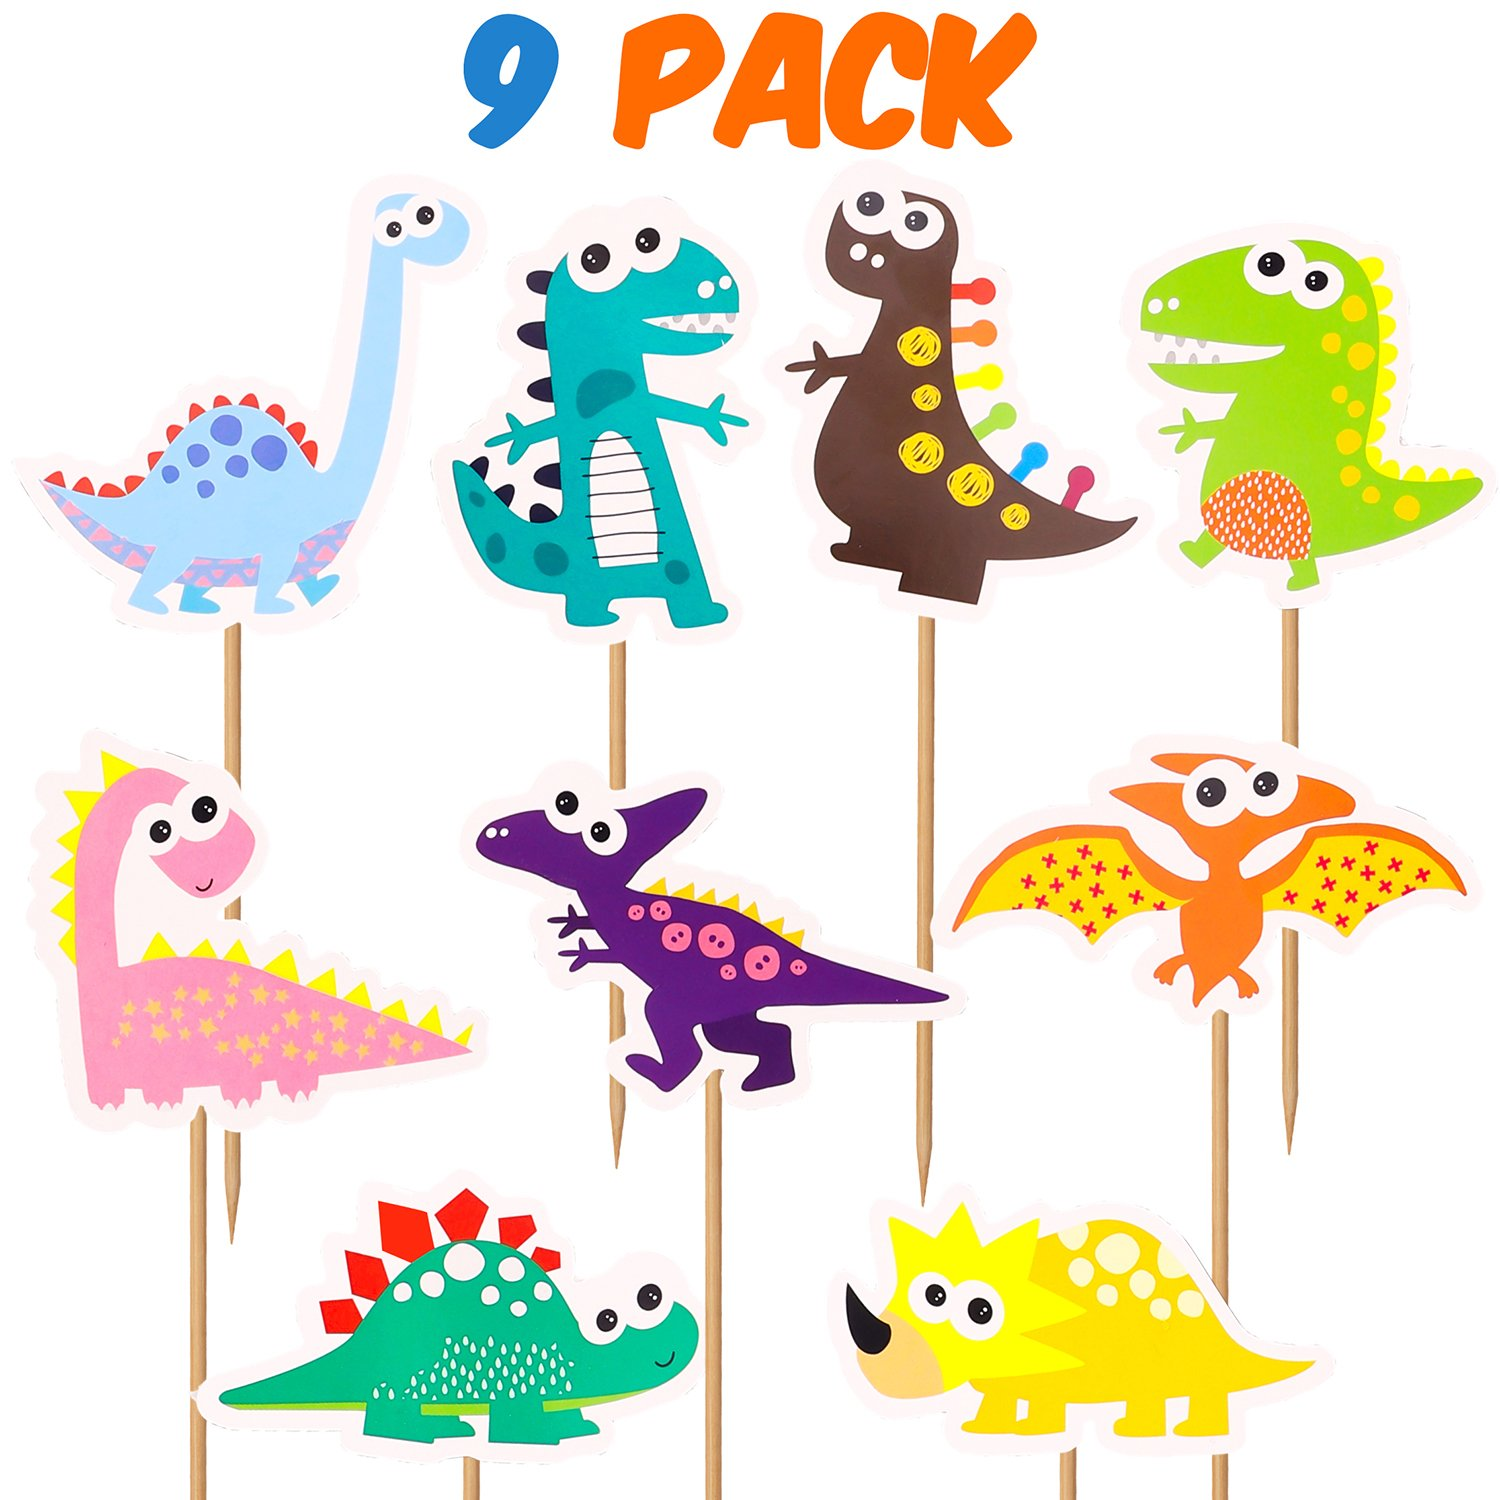 Colorful Felt Banner for DIY Dinosaur Party Supplies and Favors Jungle Jurassic Garland Photo Props WATINC 32 Pack Dinosaur Birthday Banner and Cake Topper for Kids Birthday Party Decorations